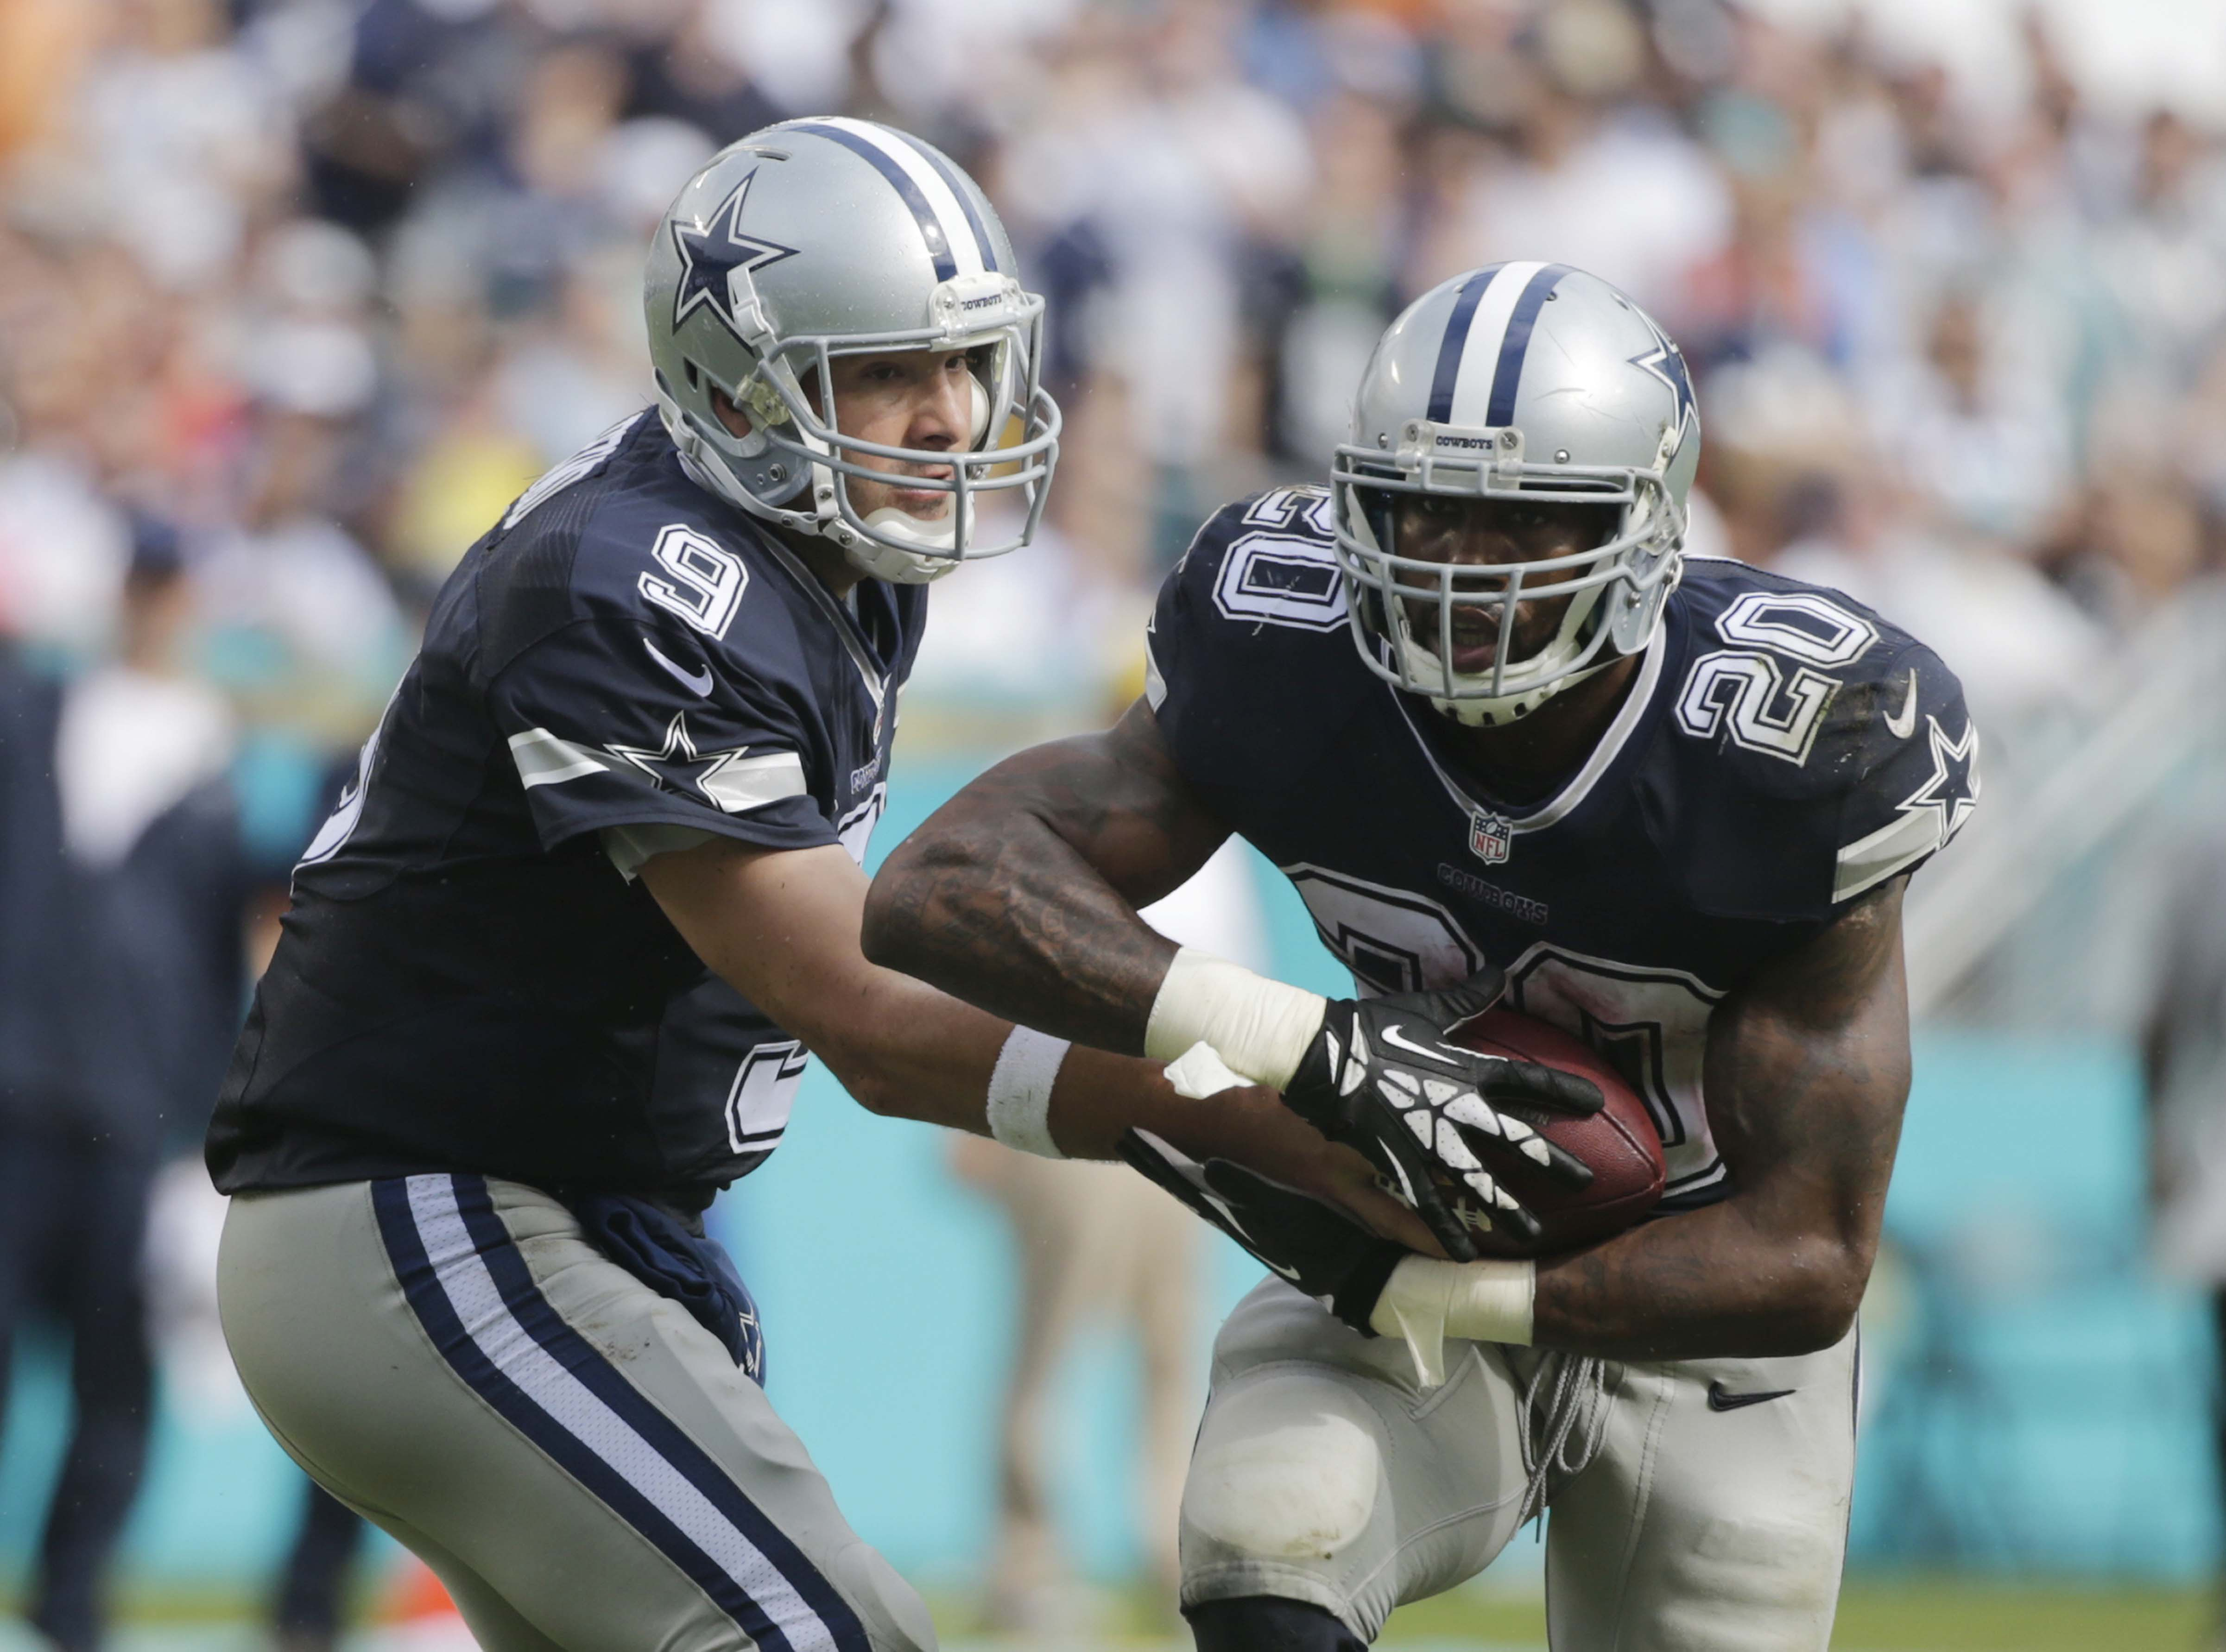 Dallas Cowboys quarterback Tony Romo (9) hands the ball to running back Darren McFadden (20) during the first half of an NFL football game against the Miami Dolphins, Sunday, Nov. 22, 2015, in Miami Gardens, Fla. (AP Photo/Wilfredo Lee)